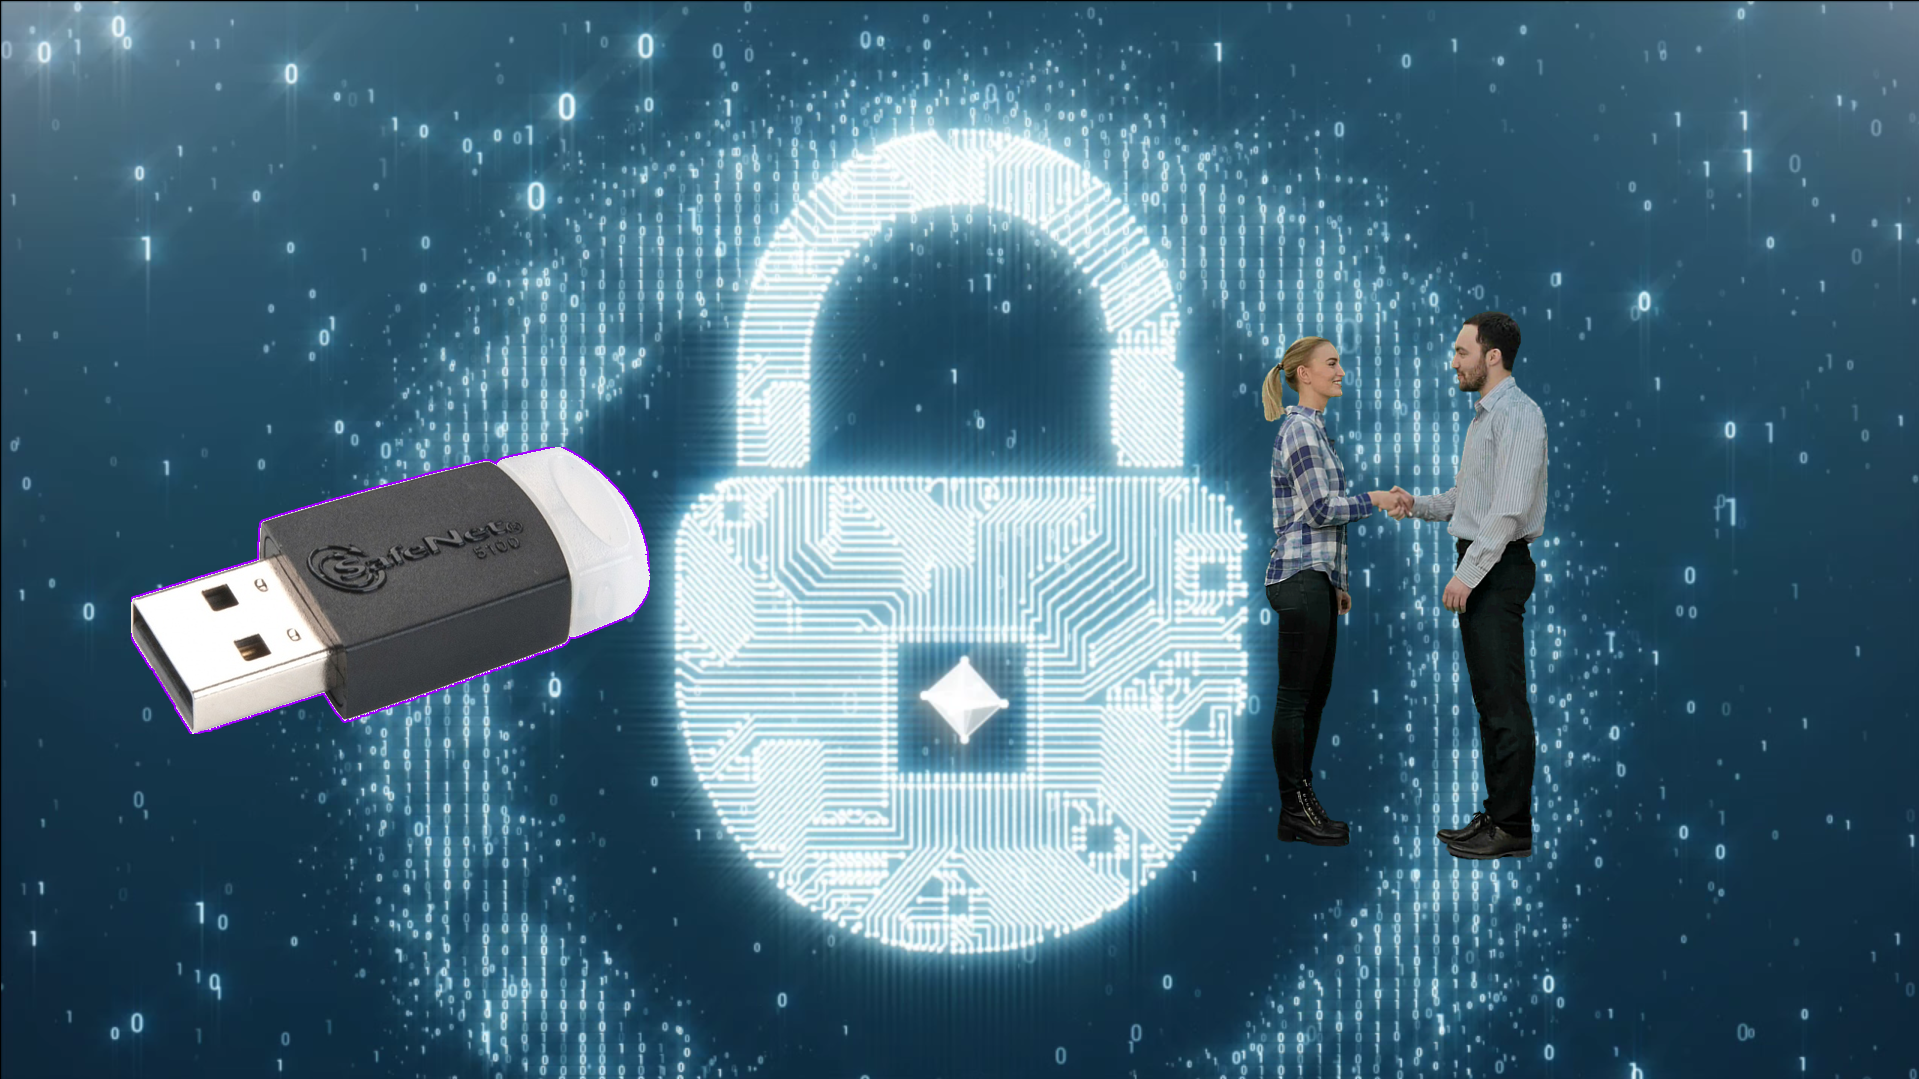 Software Code Signing For Enhanced Security and Brand Trust